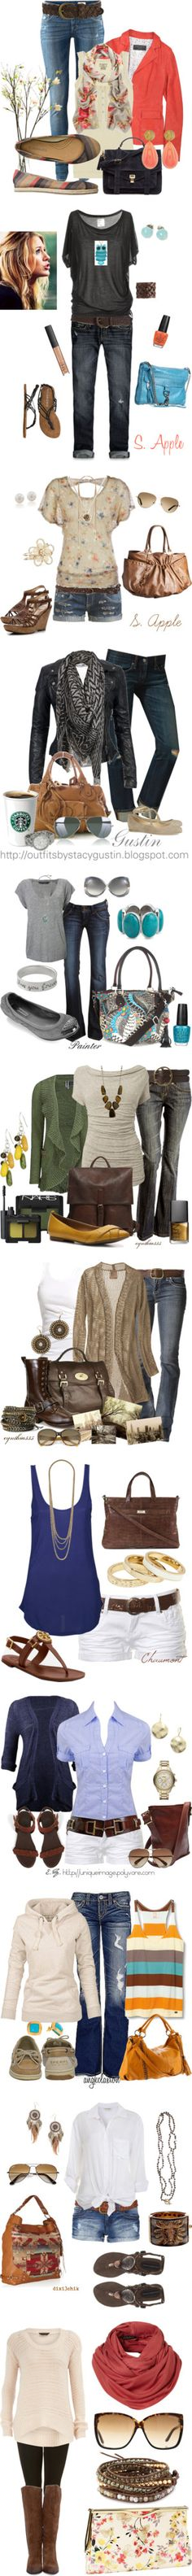 Lots of cute, casual ideas...